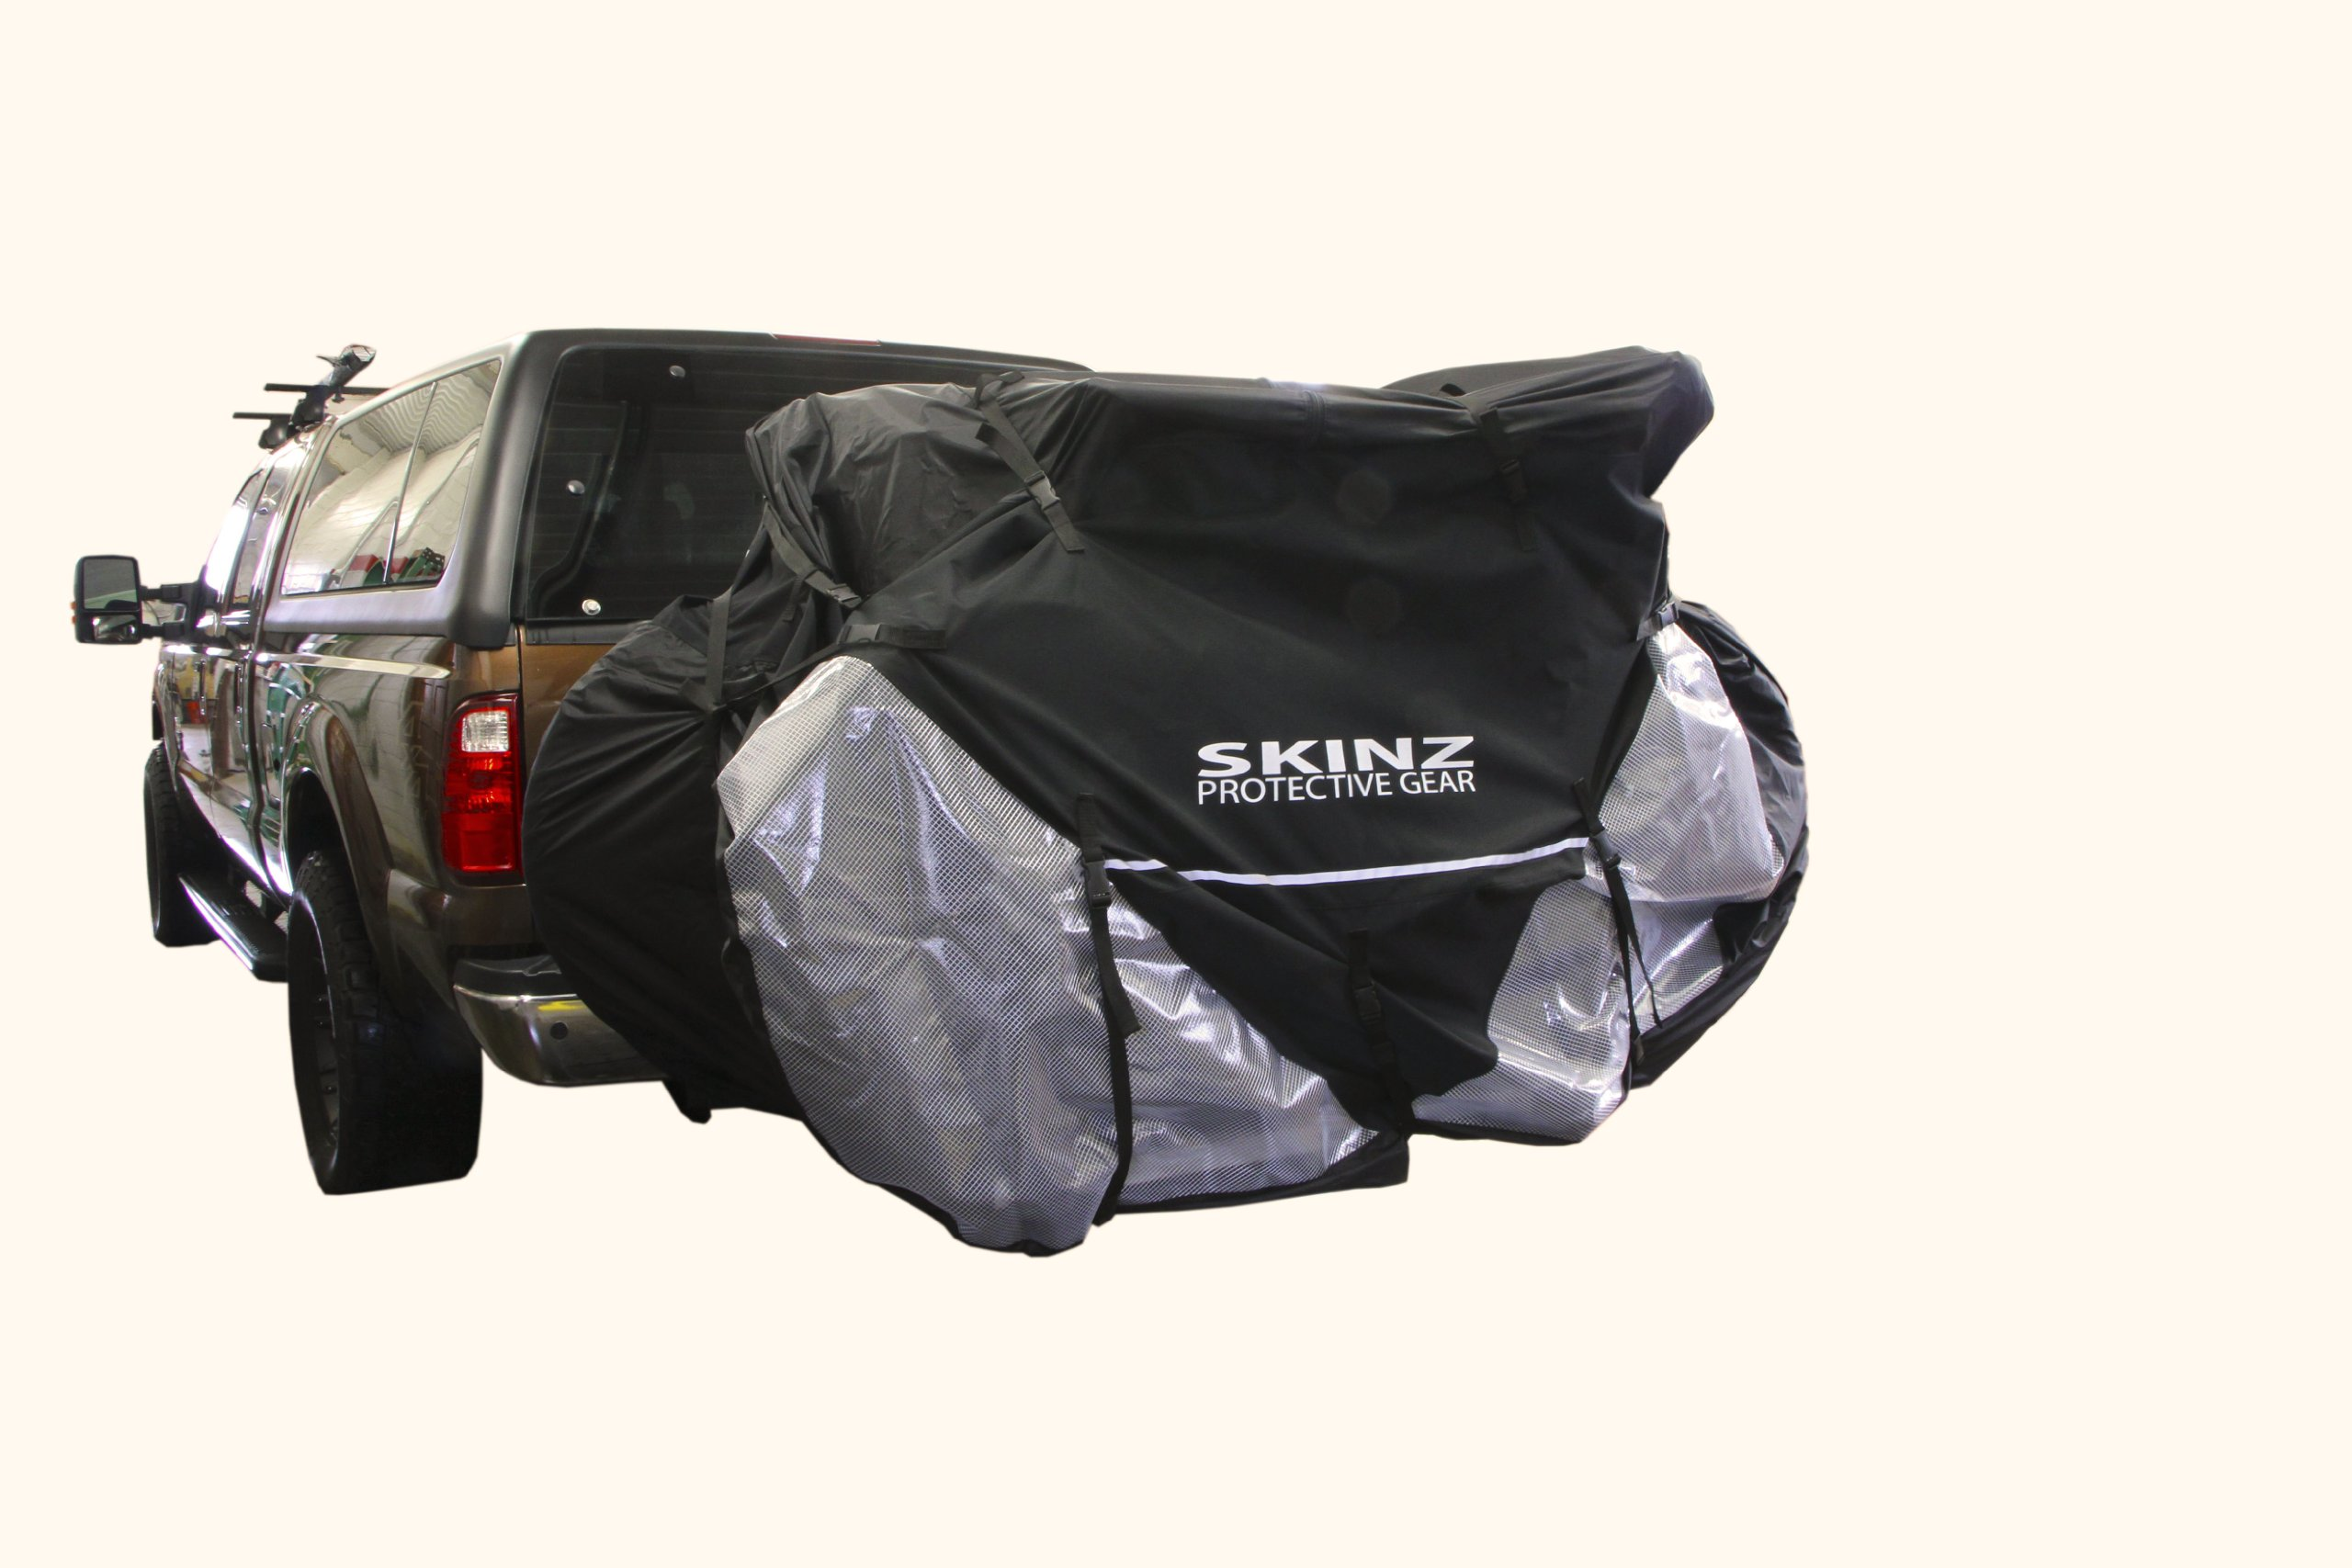 Skinz Protective Gear Rear Transport Cover (4-5 Bikes) by Skinz Protective Gear (Image #1)